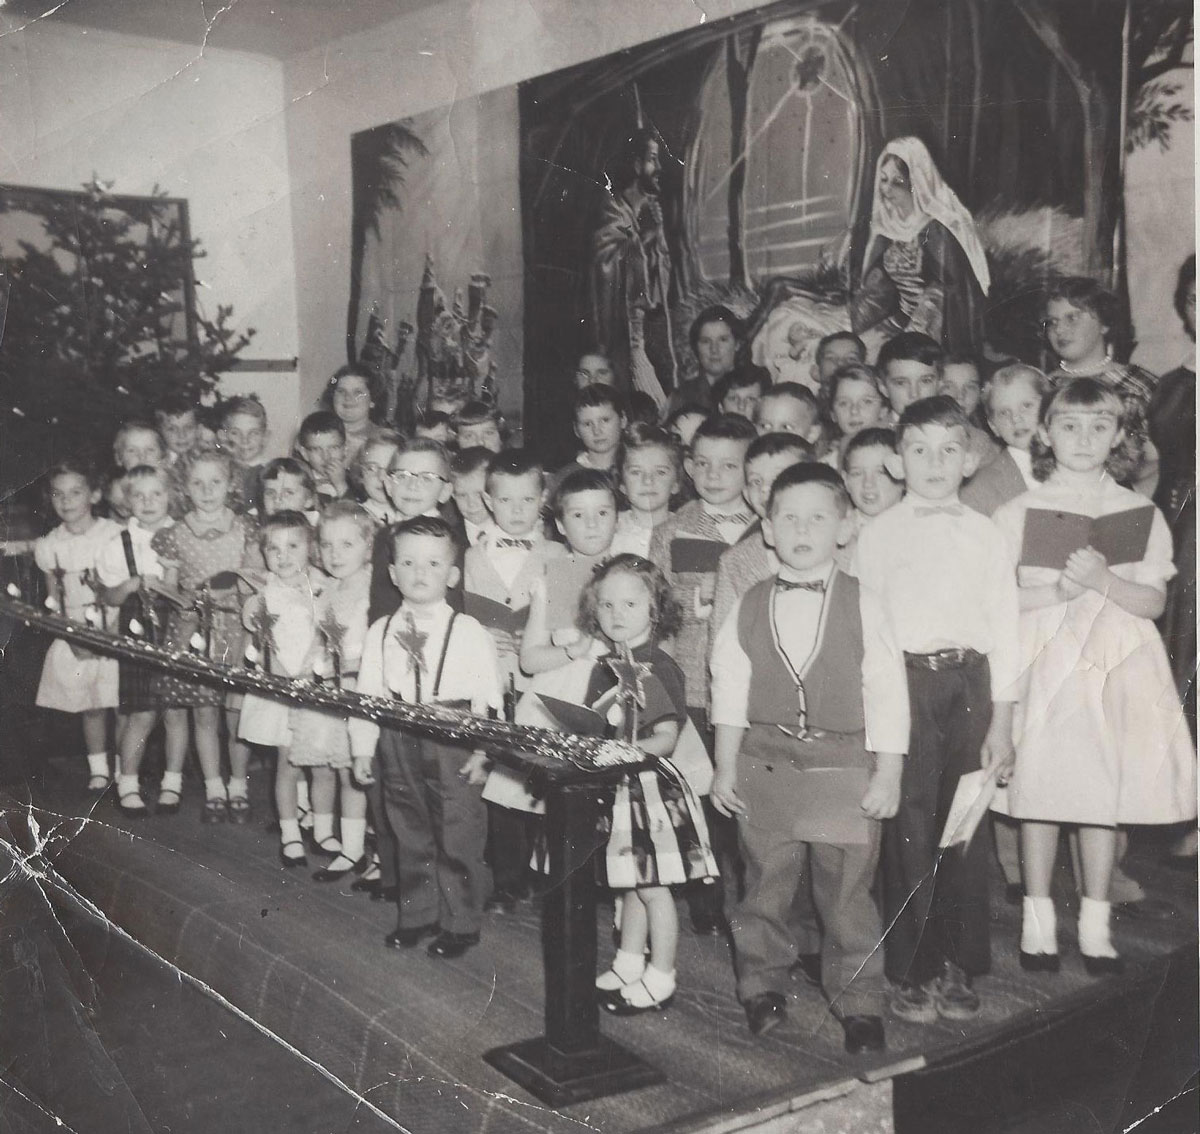 Denda Renner's Children's Christmas Program - Can you guess who is who?